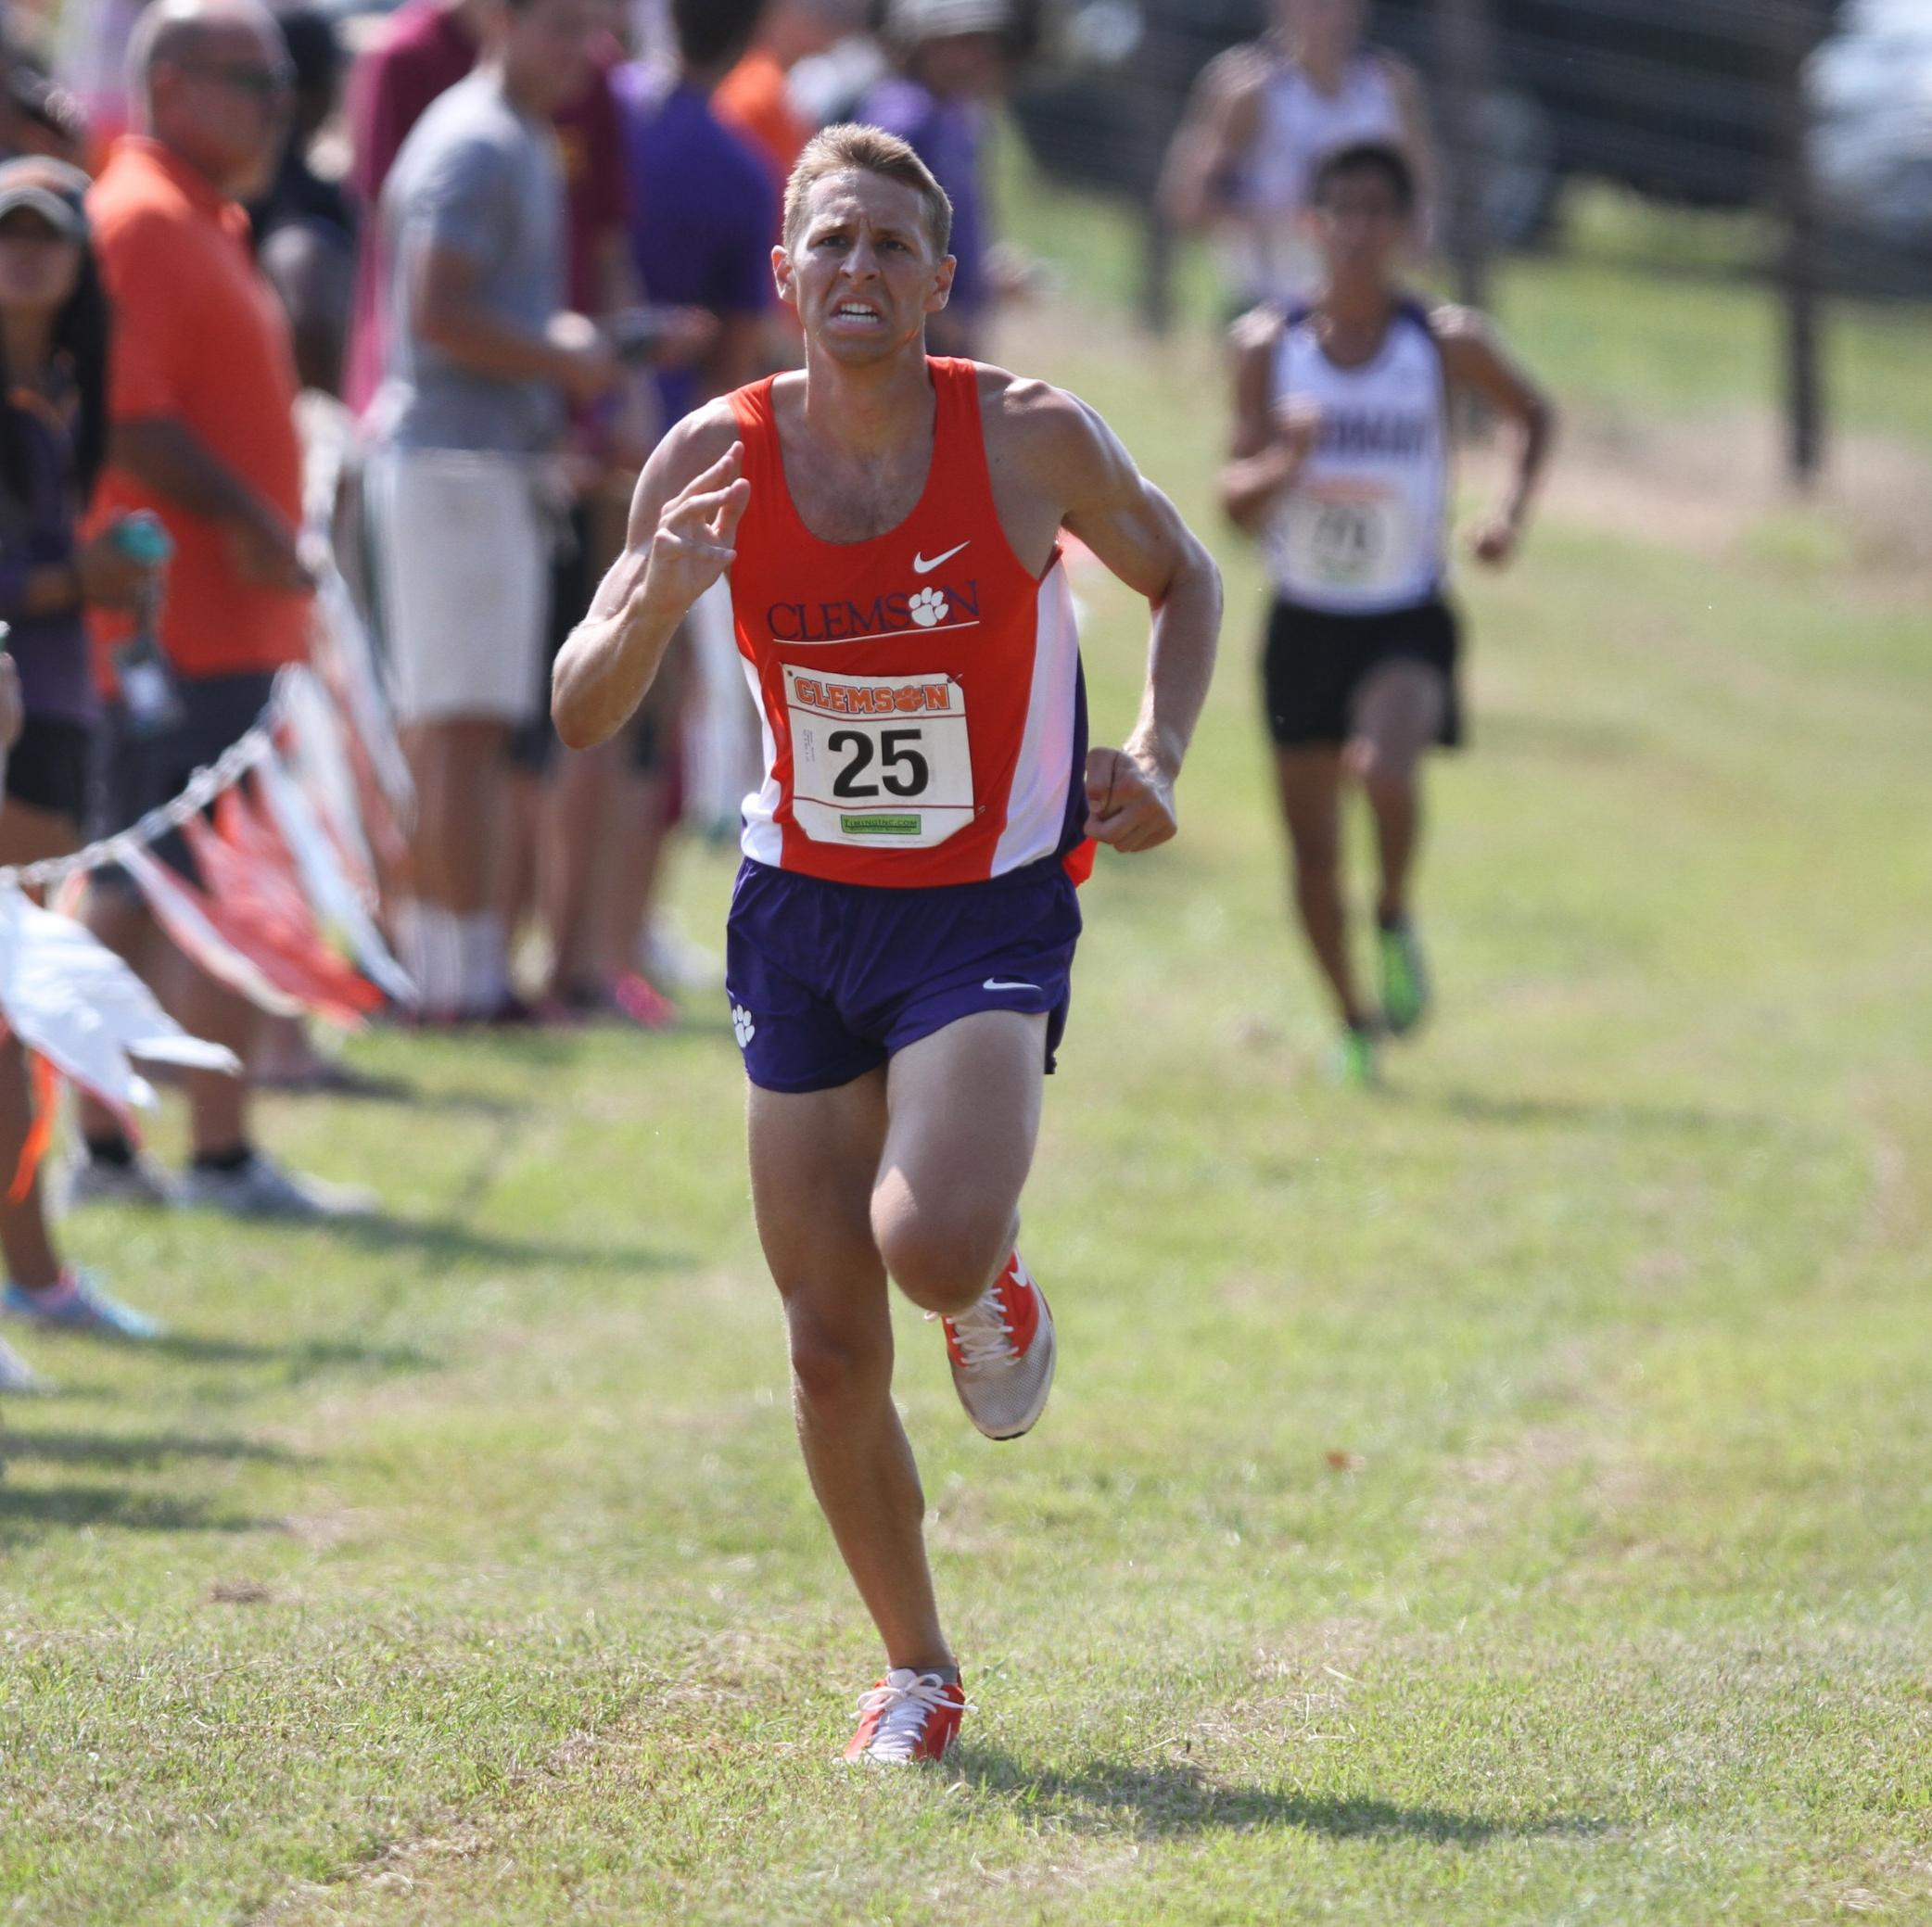 Five Tigers Named to All-ACC Academic Cross Country Team